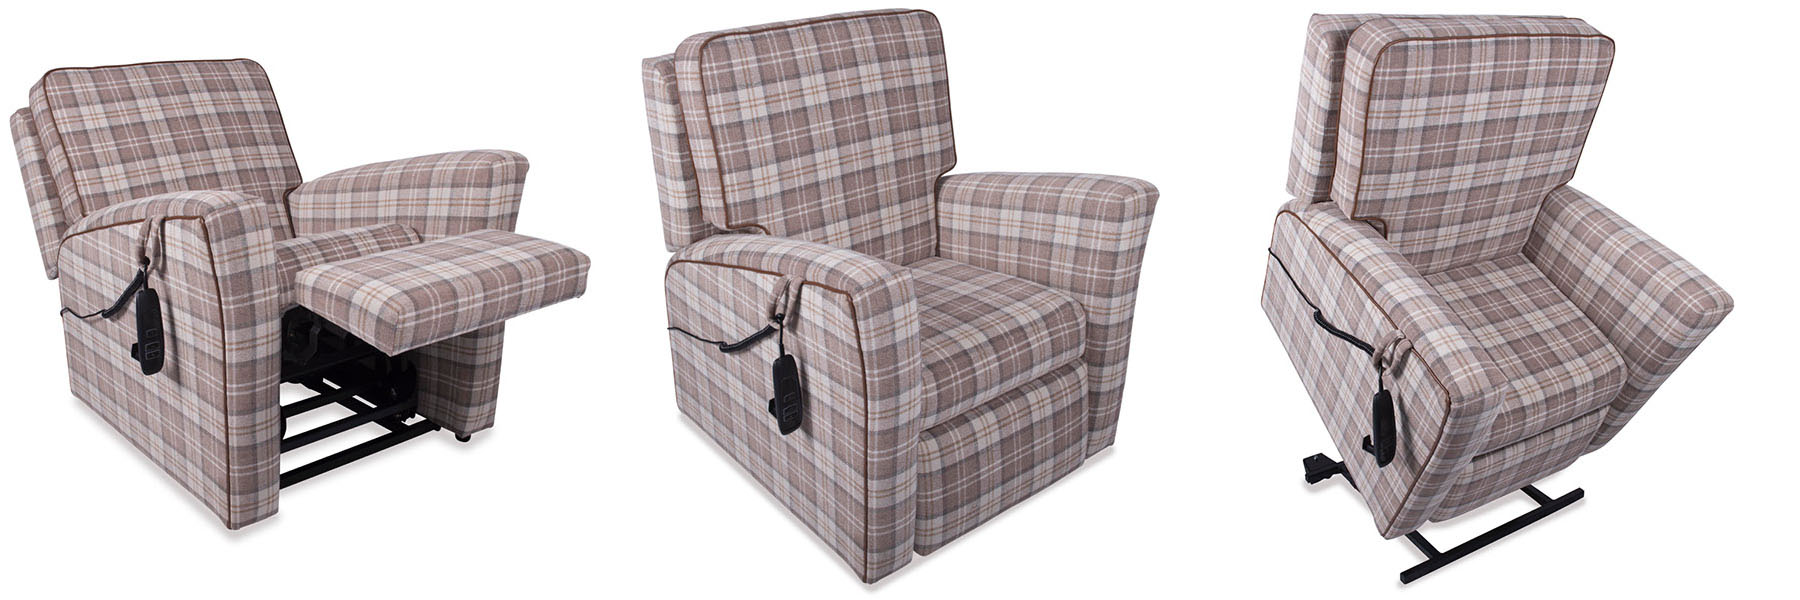 The Buckingham rise and recliner chairs